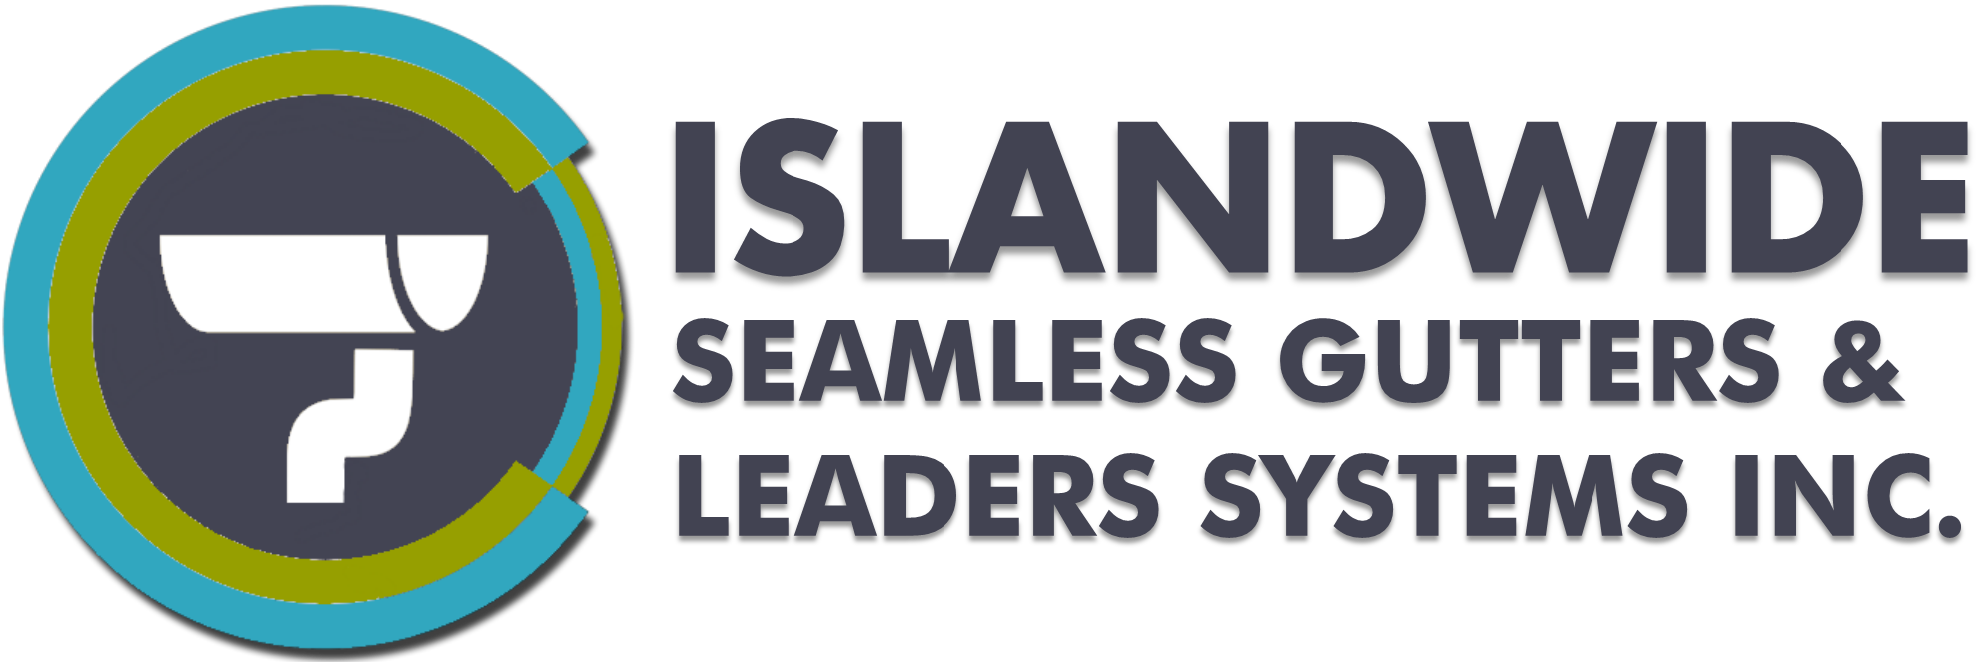 Islandwide Seamless Gutters & Leaders Systems